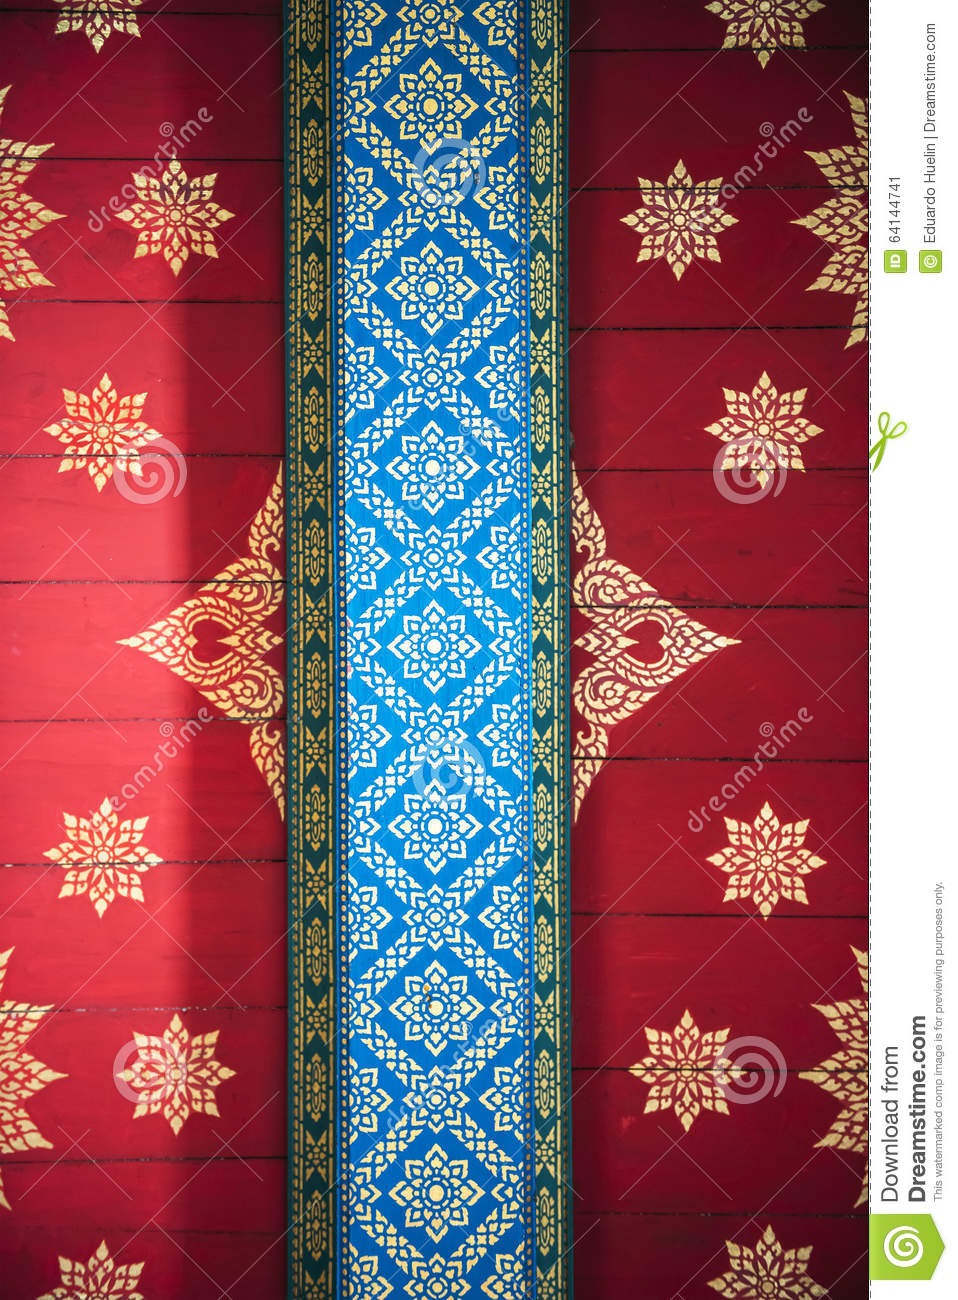 White wood texture ancient wood surface background pattern royalty - Wall Pattern Thailand Royalty Free Stock Photo